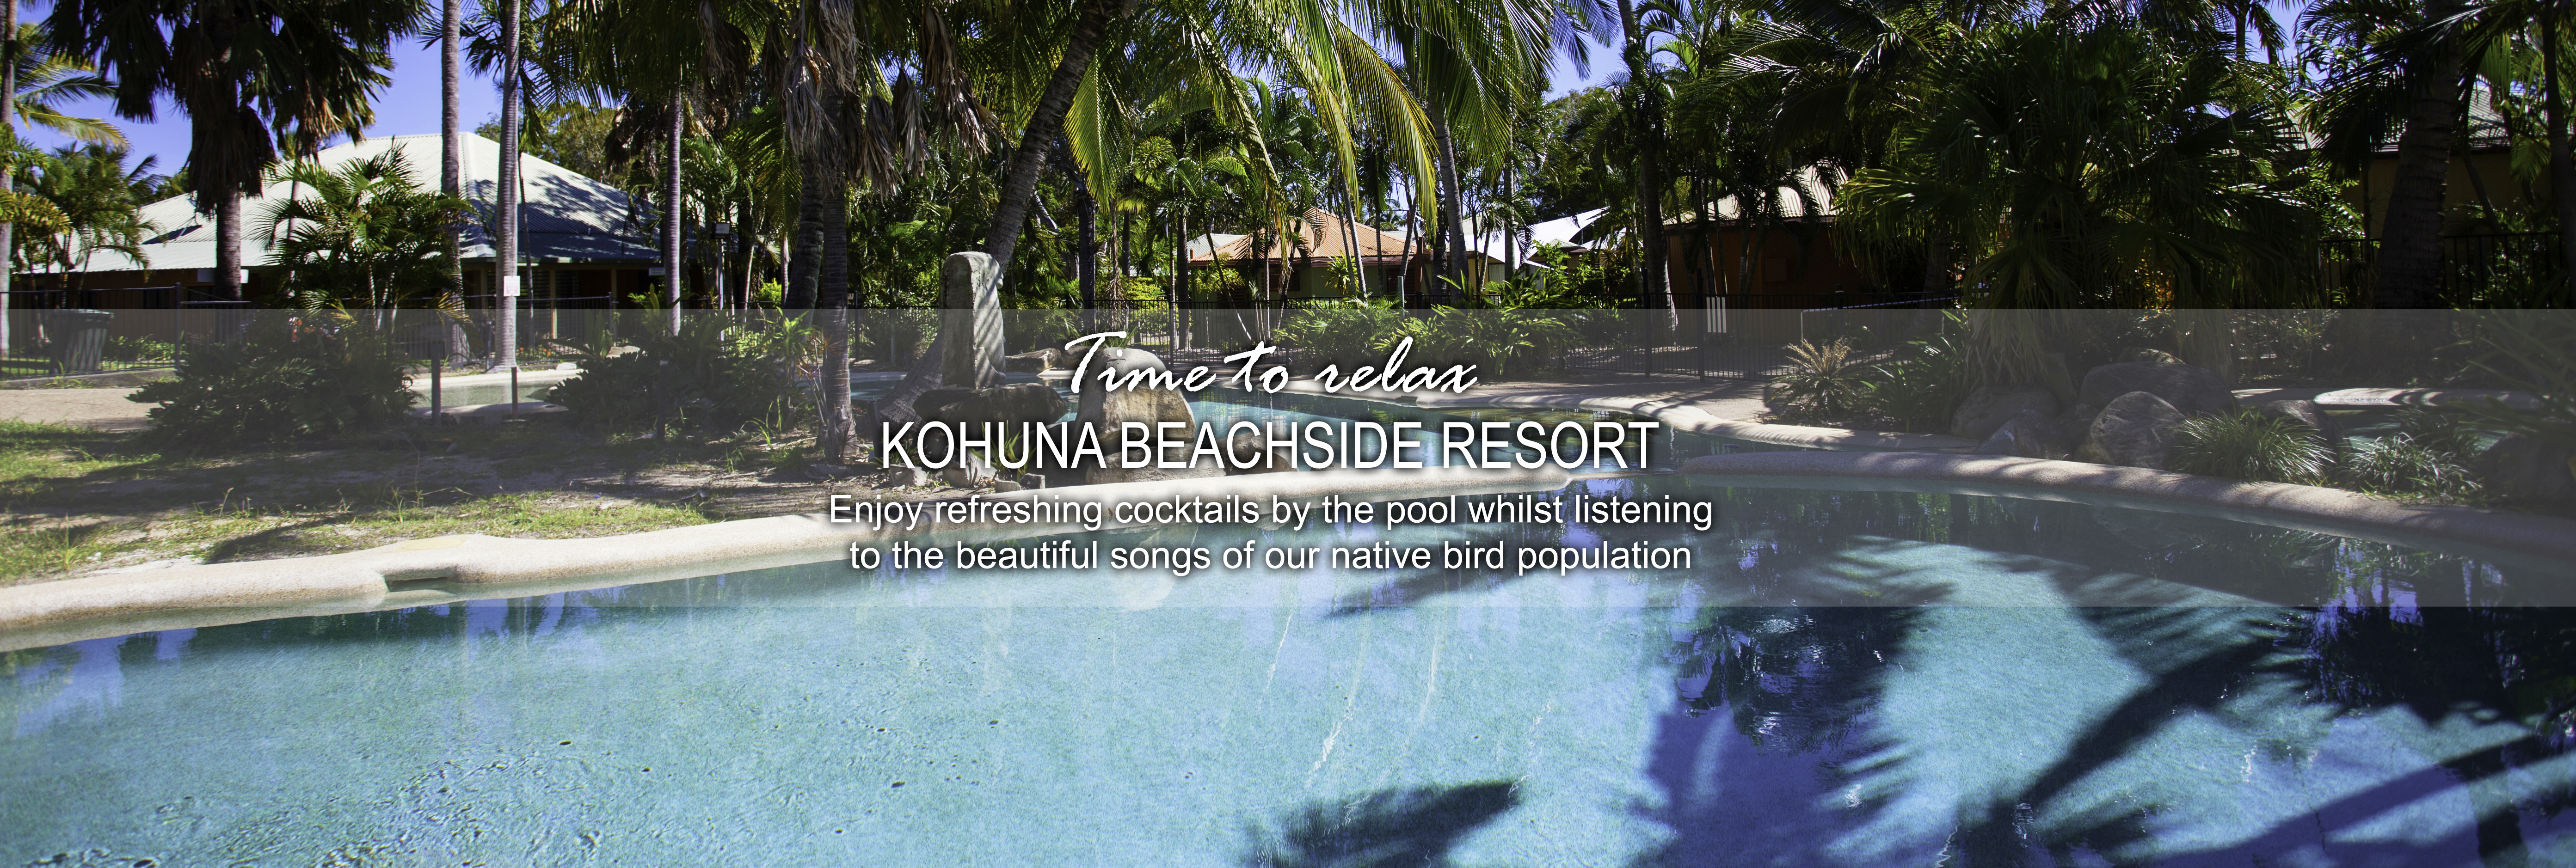 Kohuna beachside resort pool